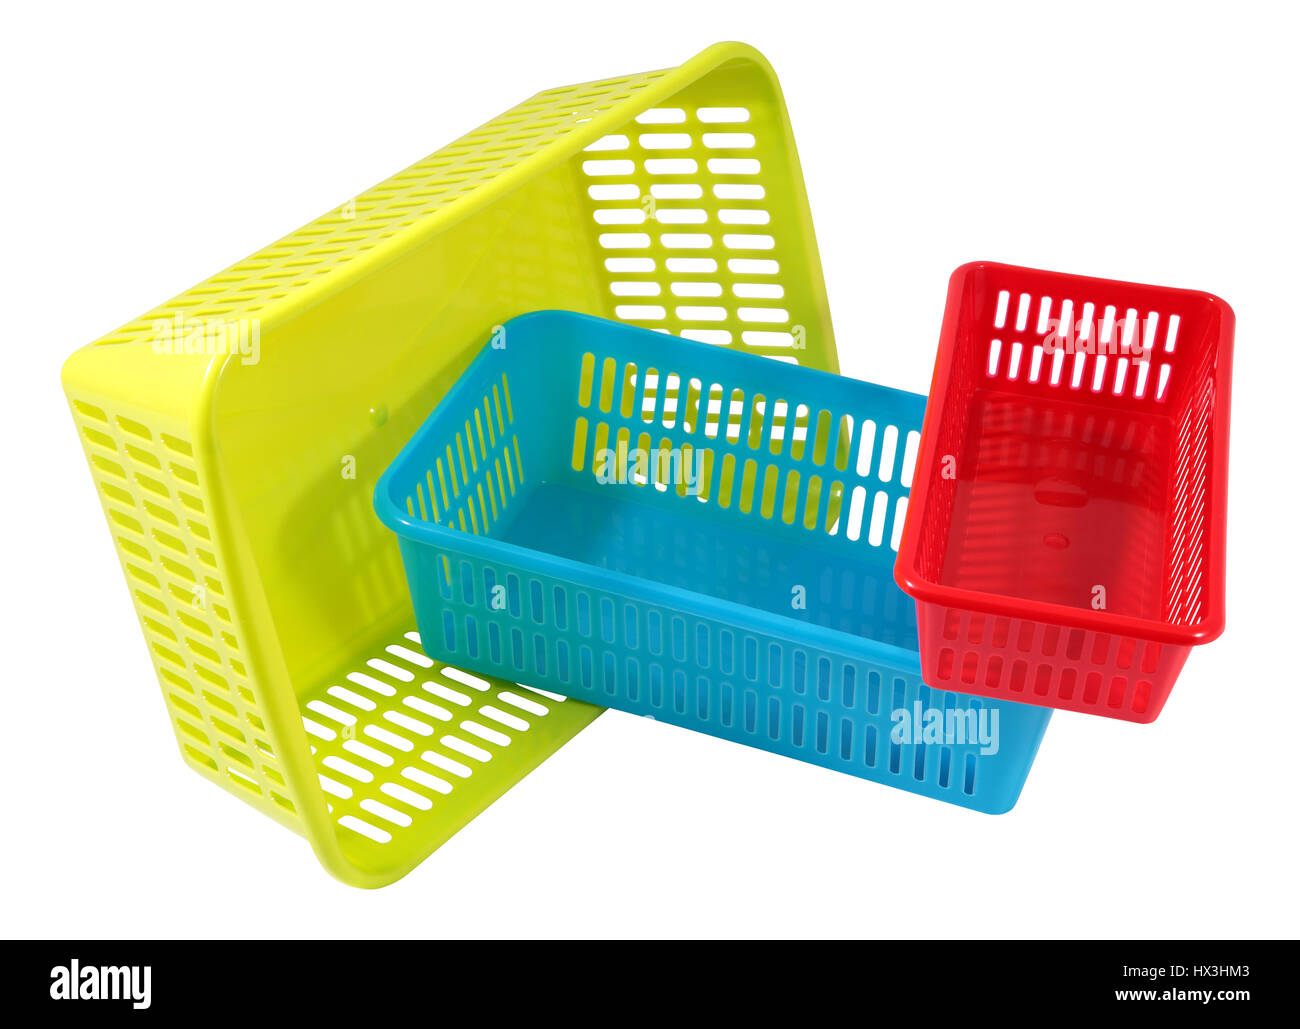 Set Of Colored Plastic Household Baskets For Storage, Three Small Containers  Of Different Sizes And